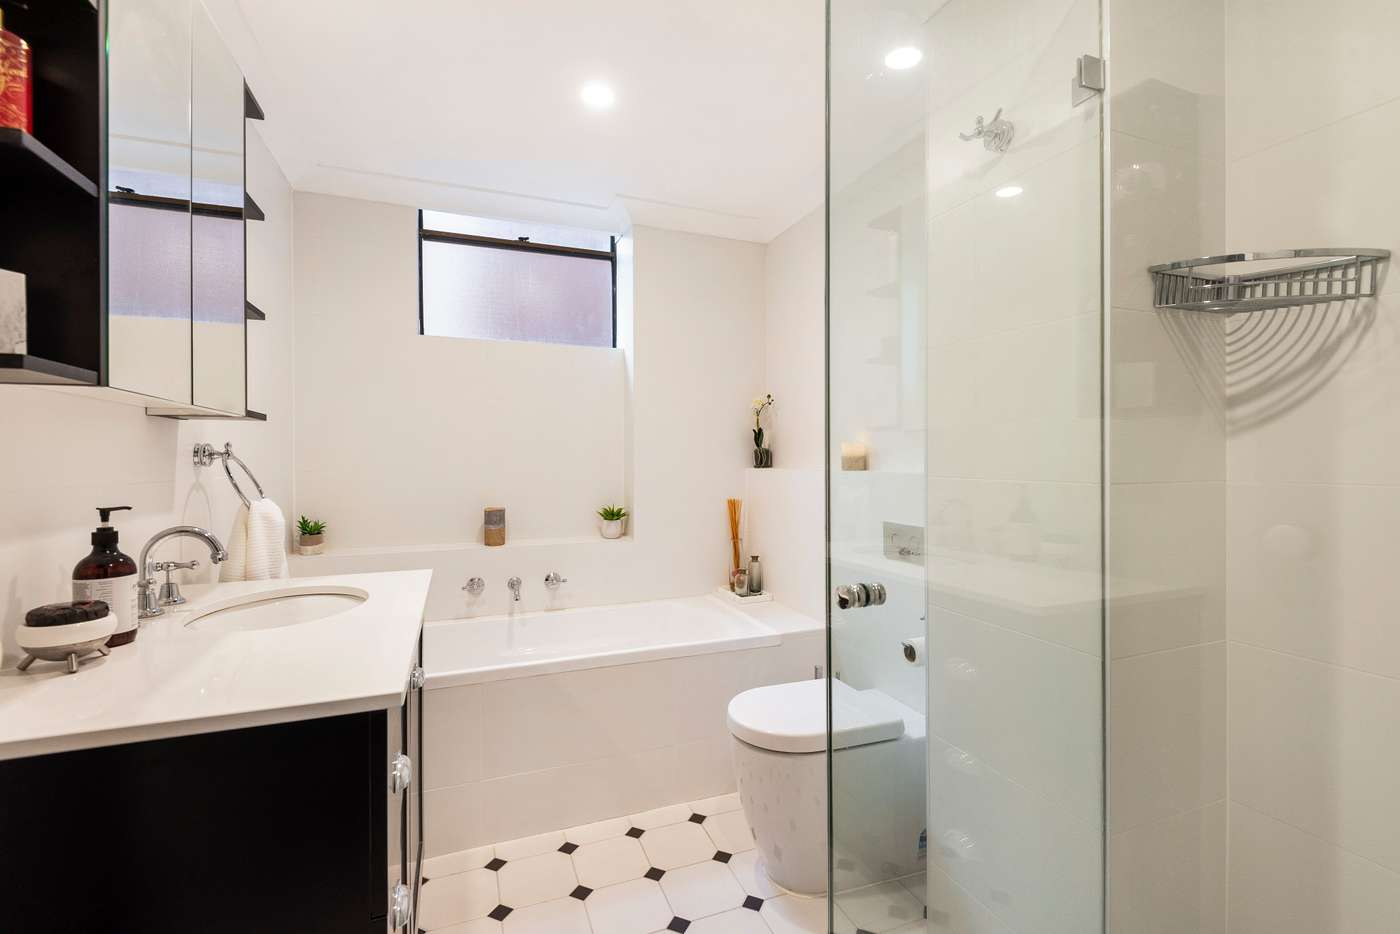 Sixth view of Homely apartment listing, 101/125-131 Spencer Road, Cremorne NSW 2090